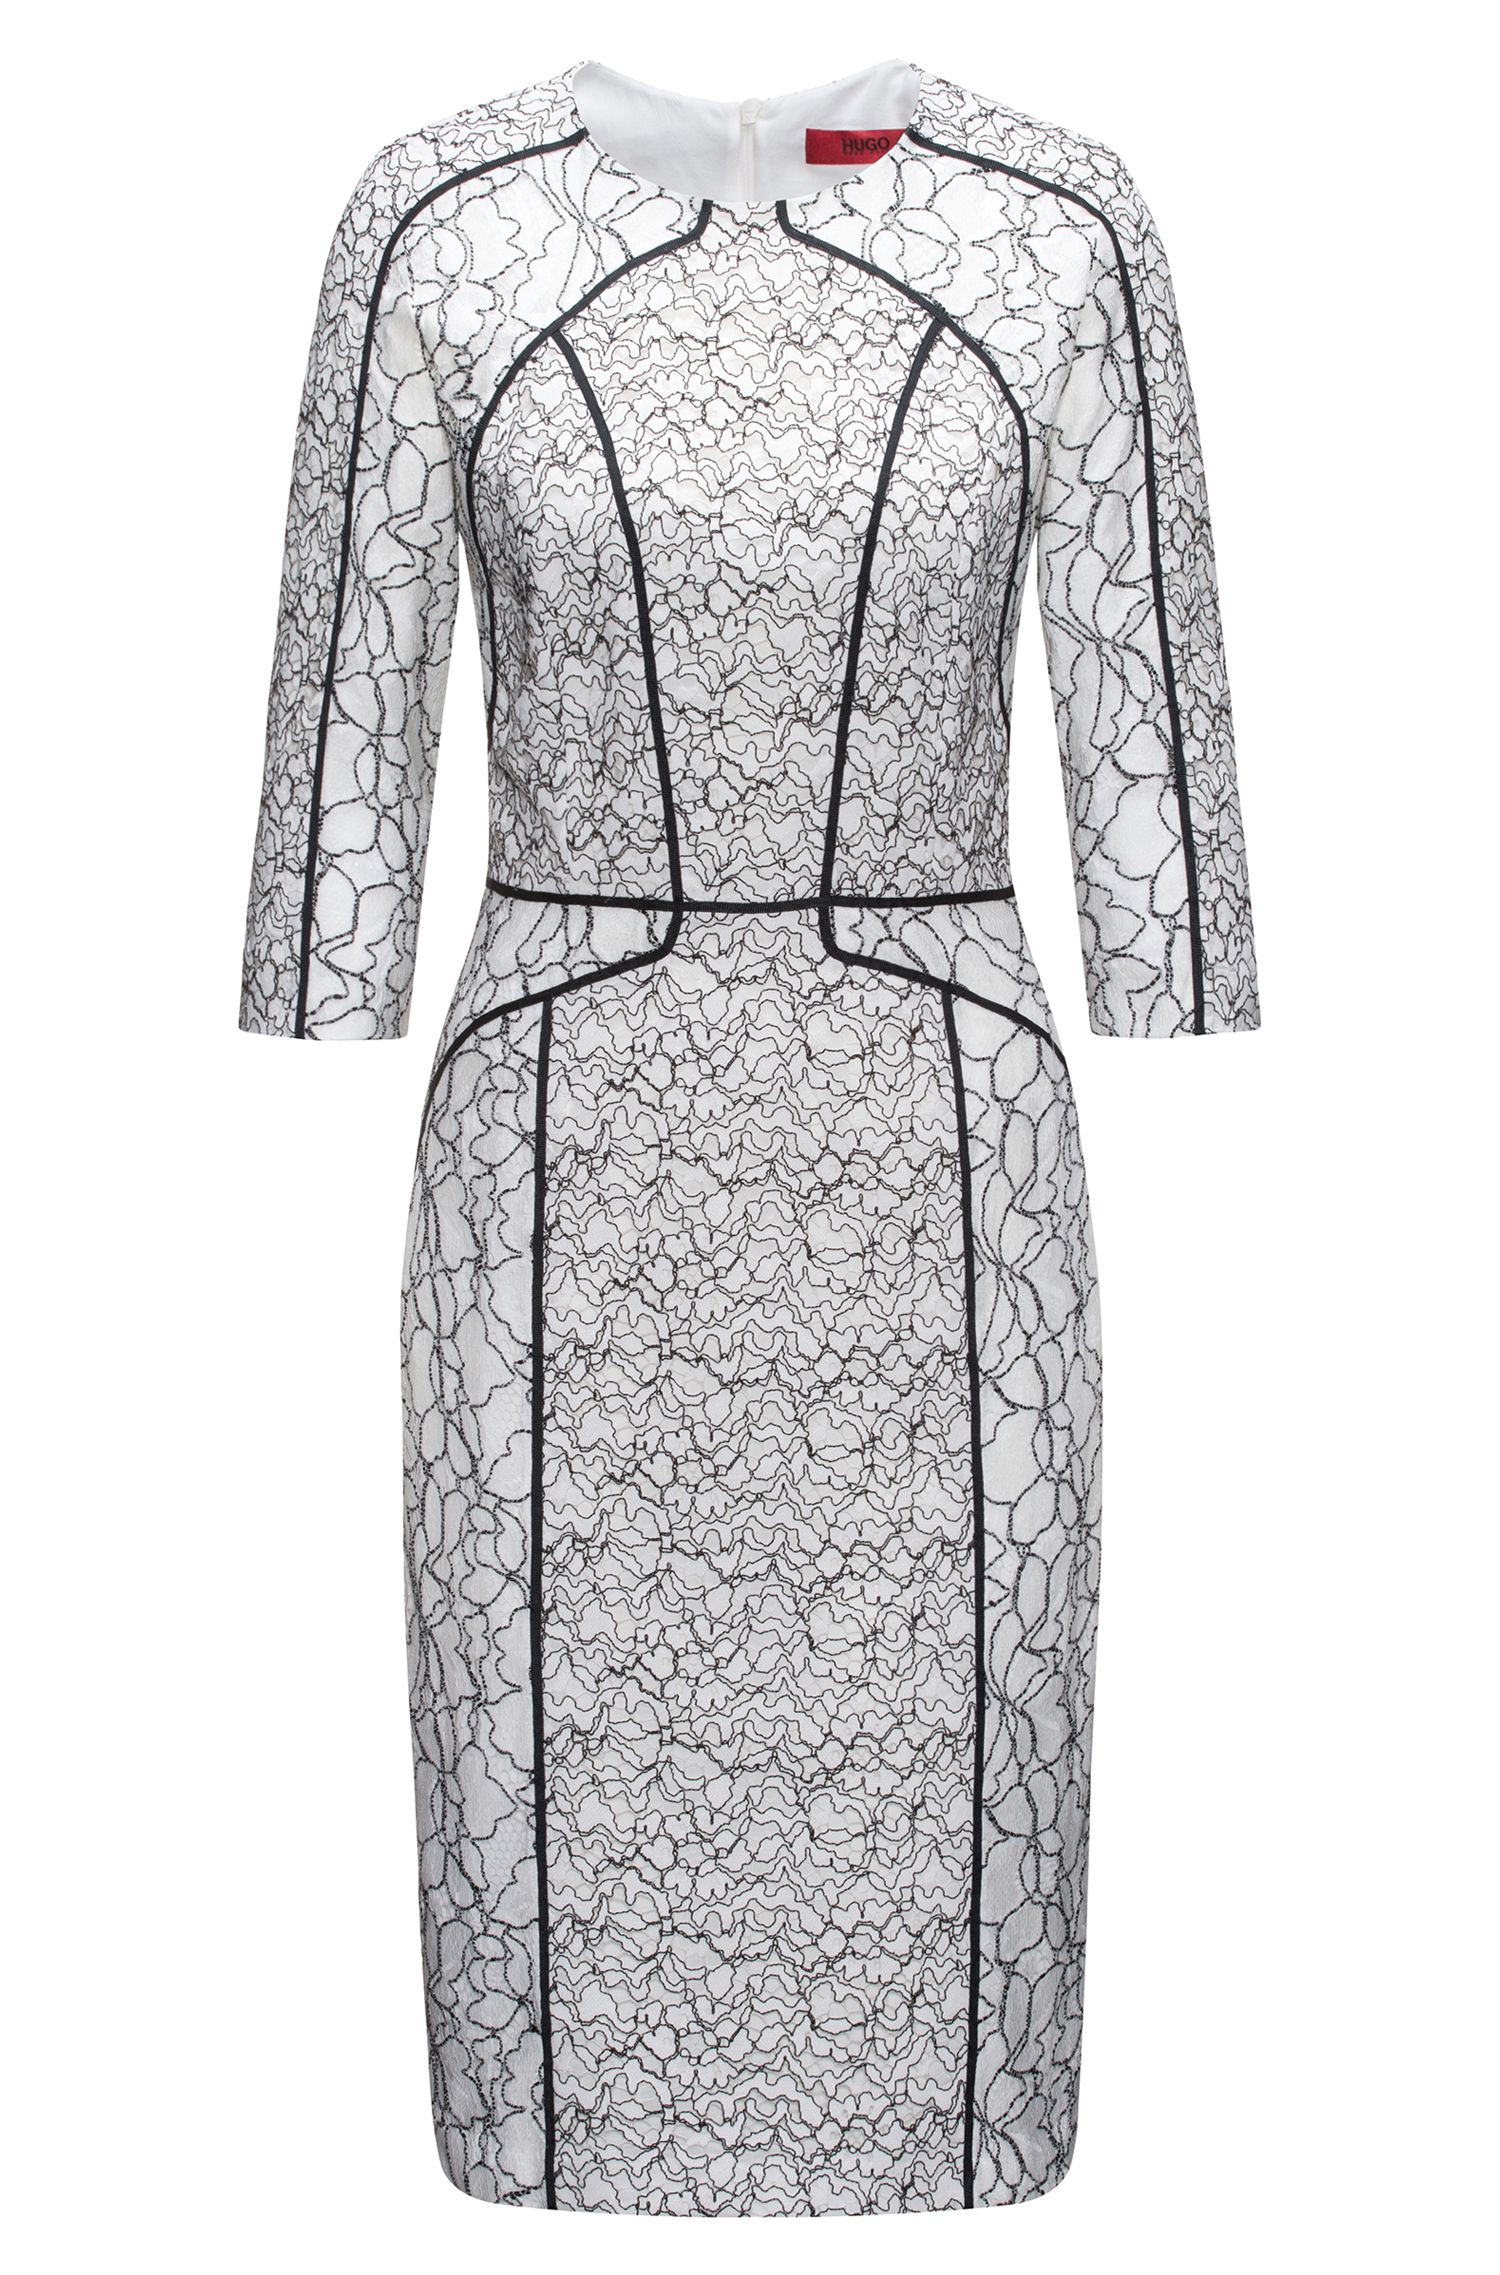 Long-sleeved dress in patched lace with contrast piping